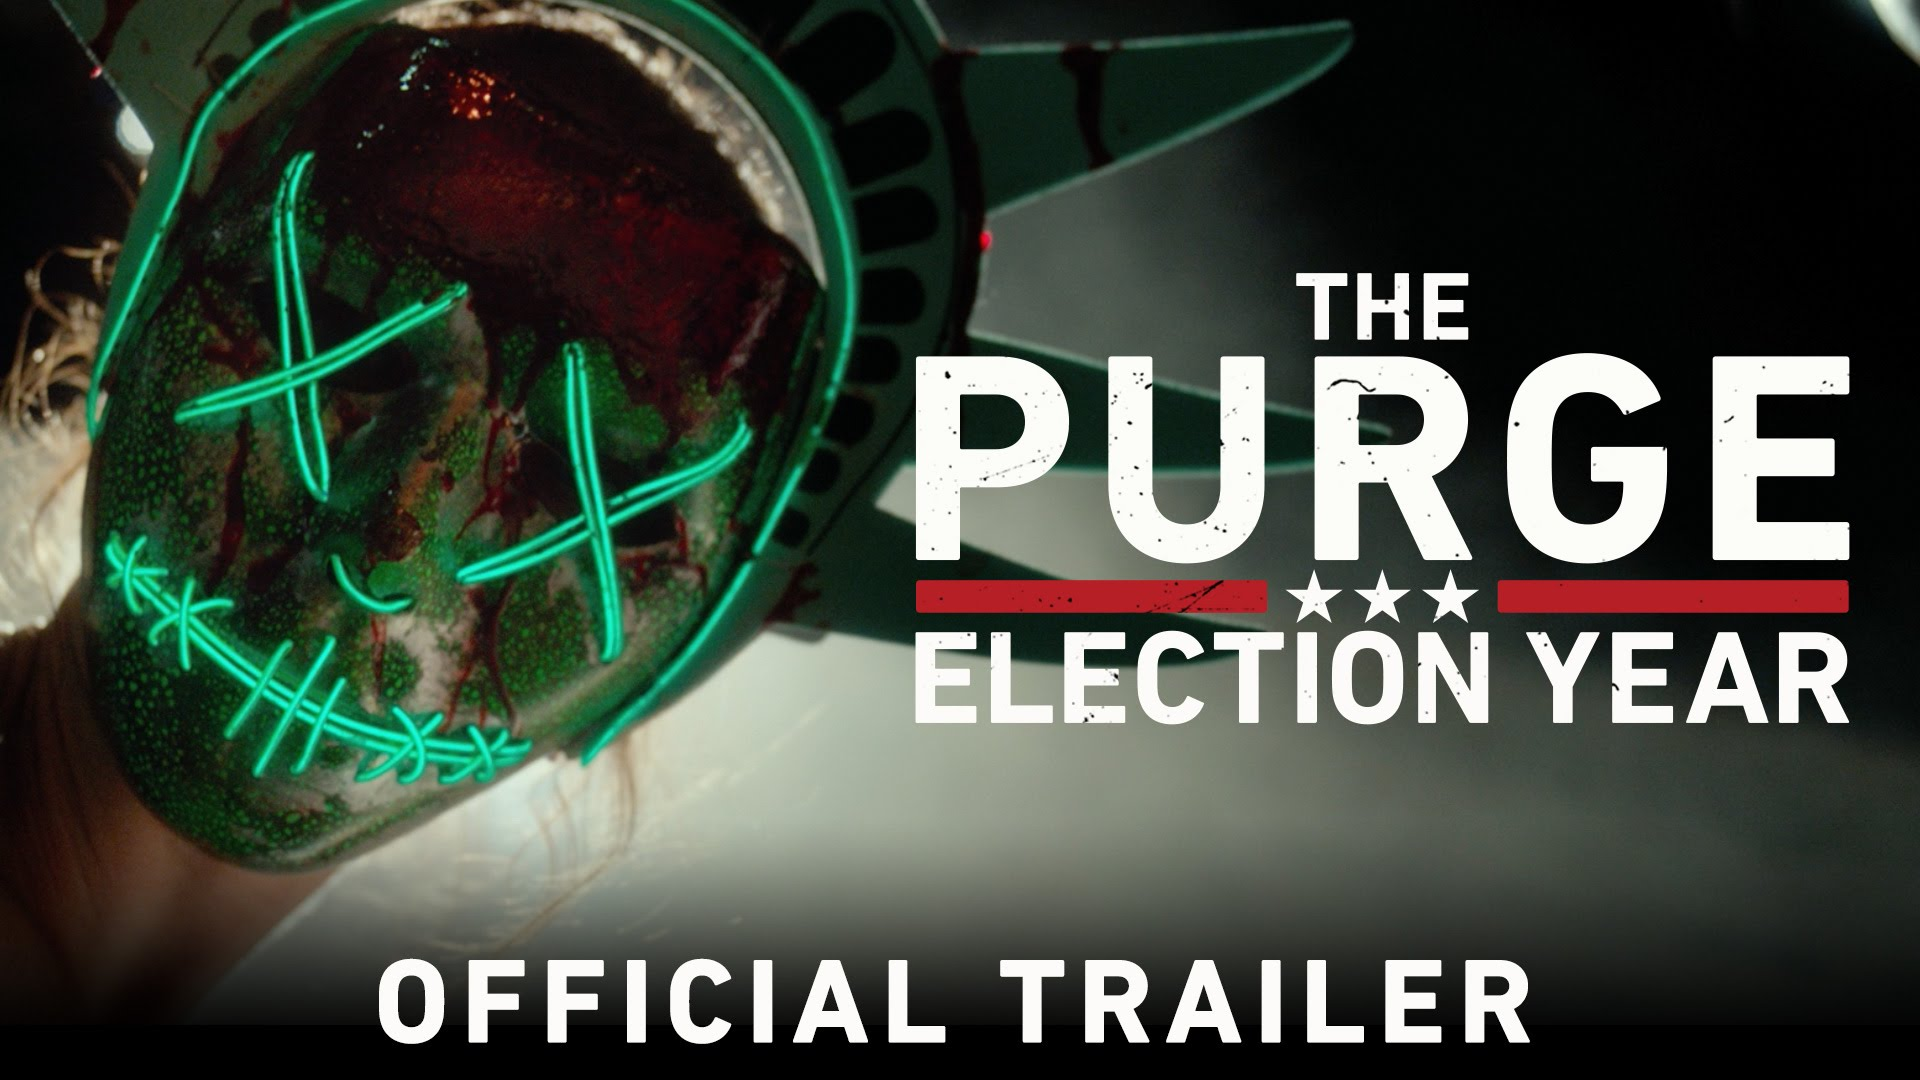 The Purge Election Year – Official Trailer (2016) |  Movie Trailers | The Annual Purge | Movie Trailers in HD